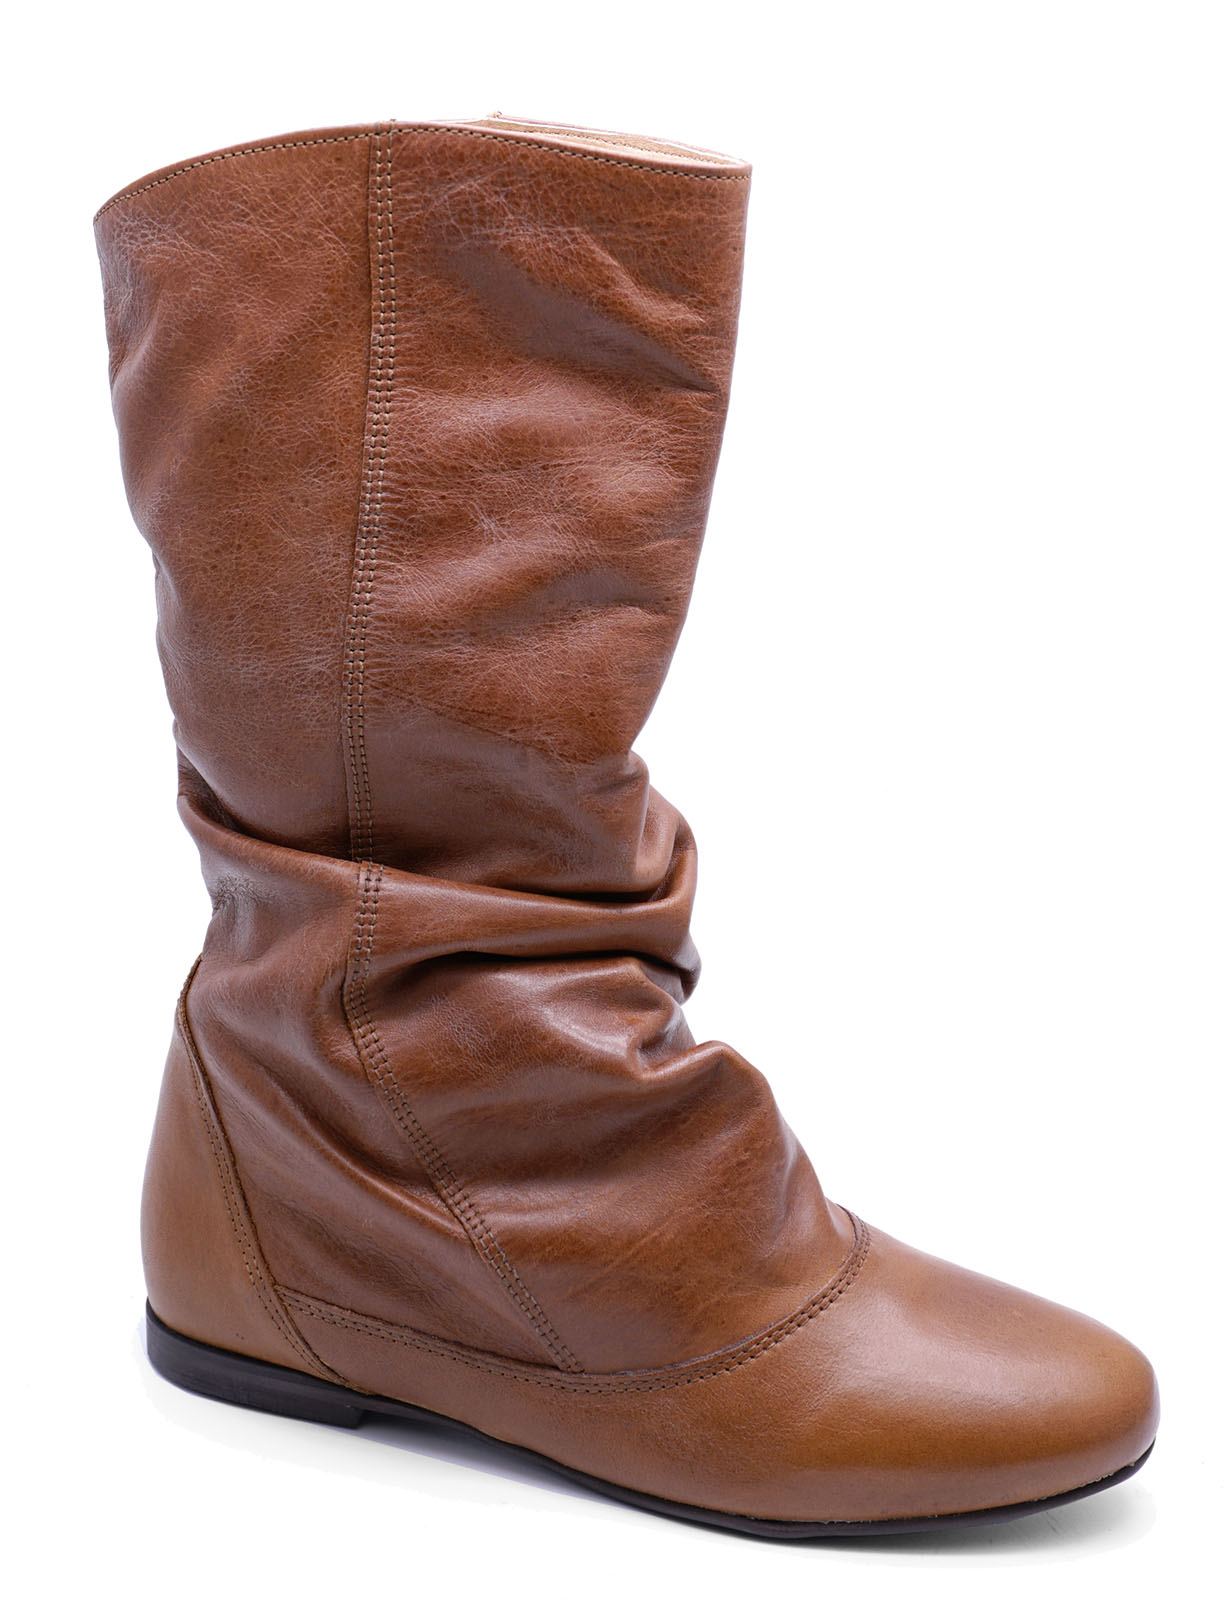 Womens Genuine Leather Brown Flat Slouch Cowboy Knee-High -6600